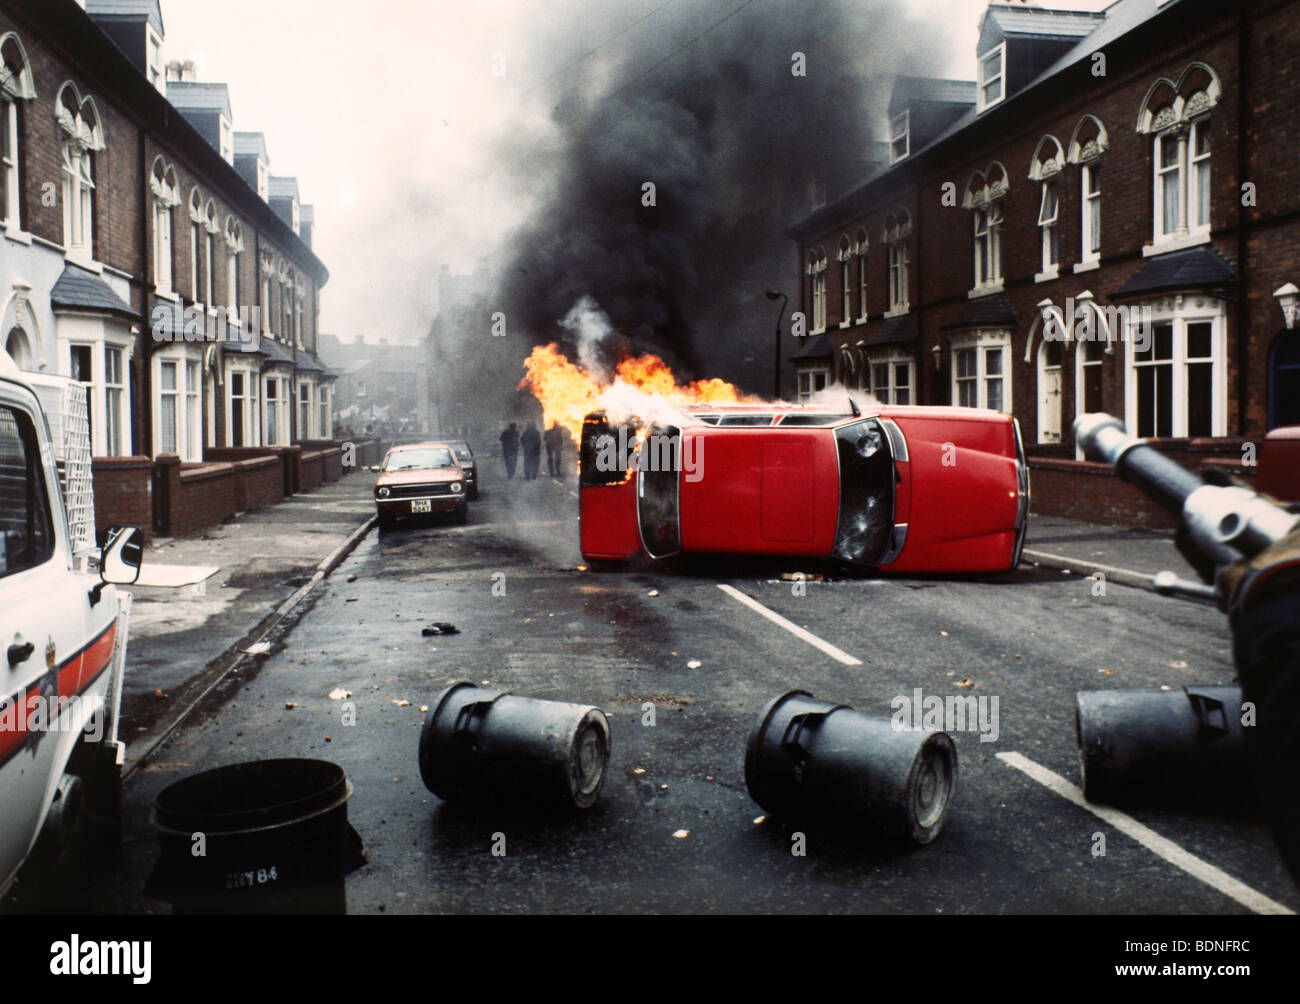 Rioting in the Handsworth Lozells area of Birmingham in 1985.The Handsworth Riots during the Margaret Thatcher Government - Stock Image